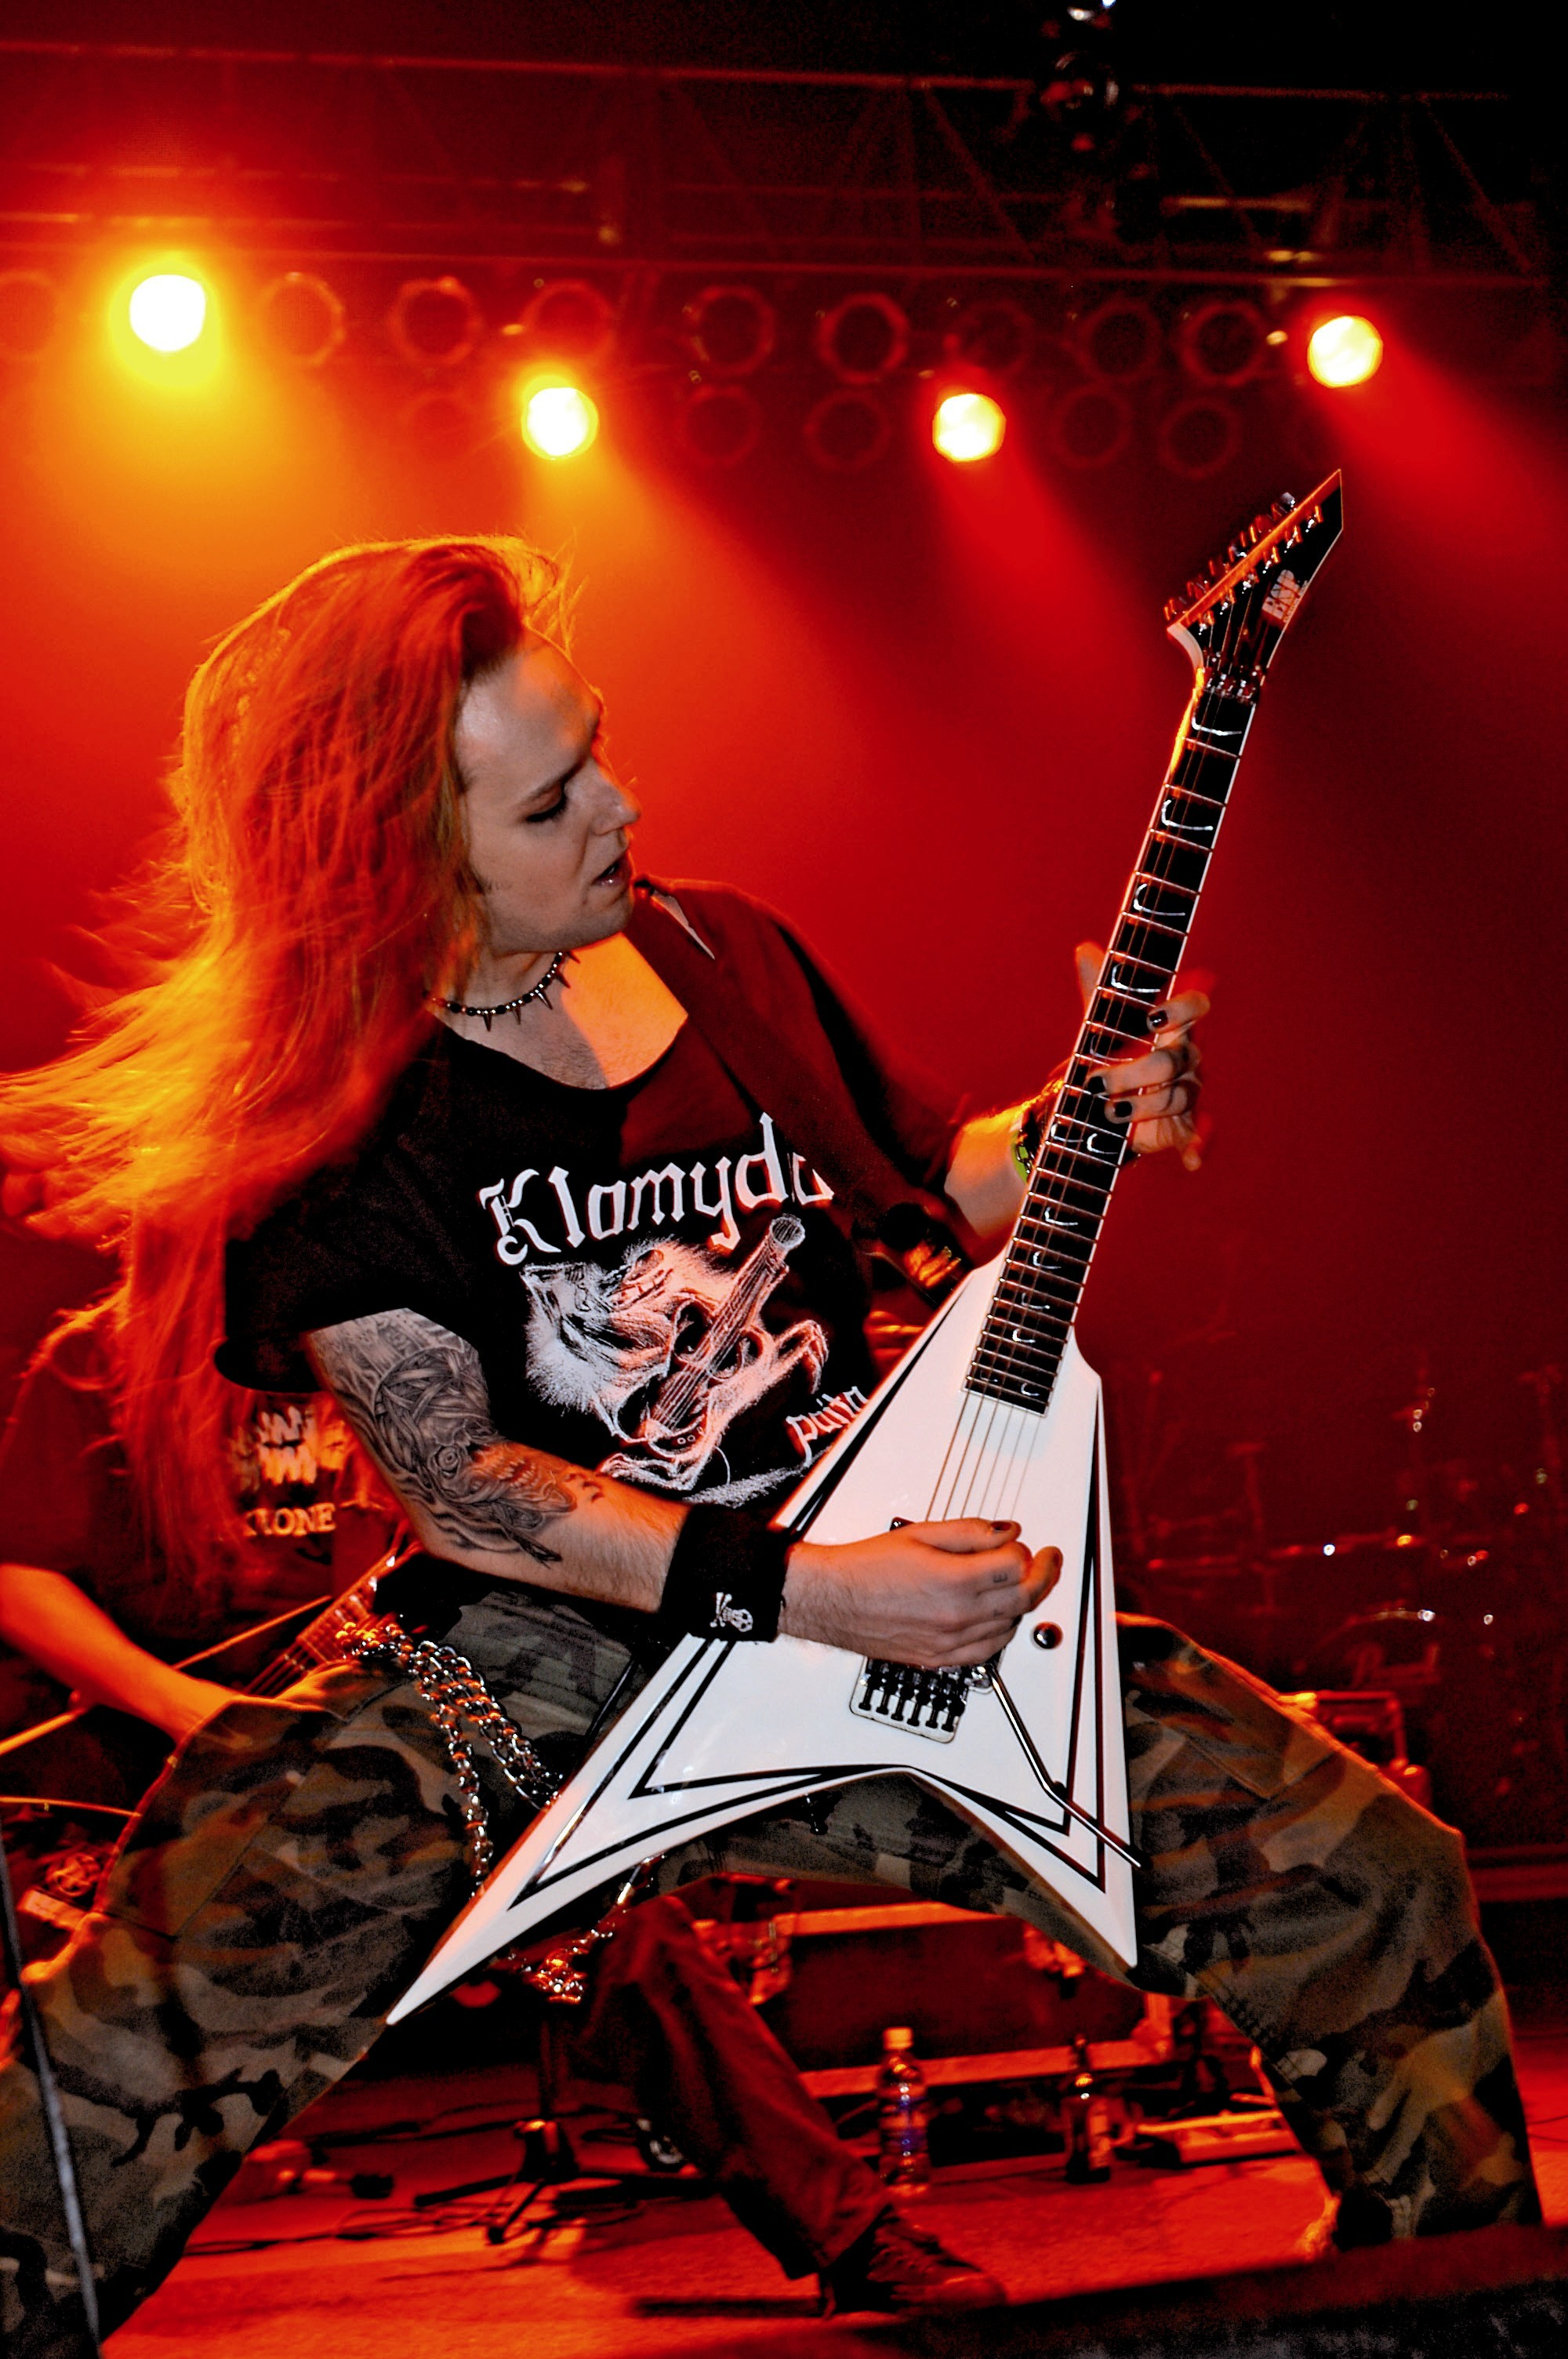 Top 10 Greatest Guitar Players (Famous Guitarists) Alexi laiho old pictures